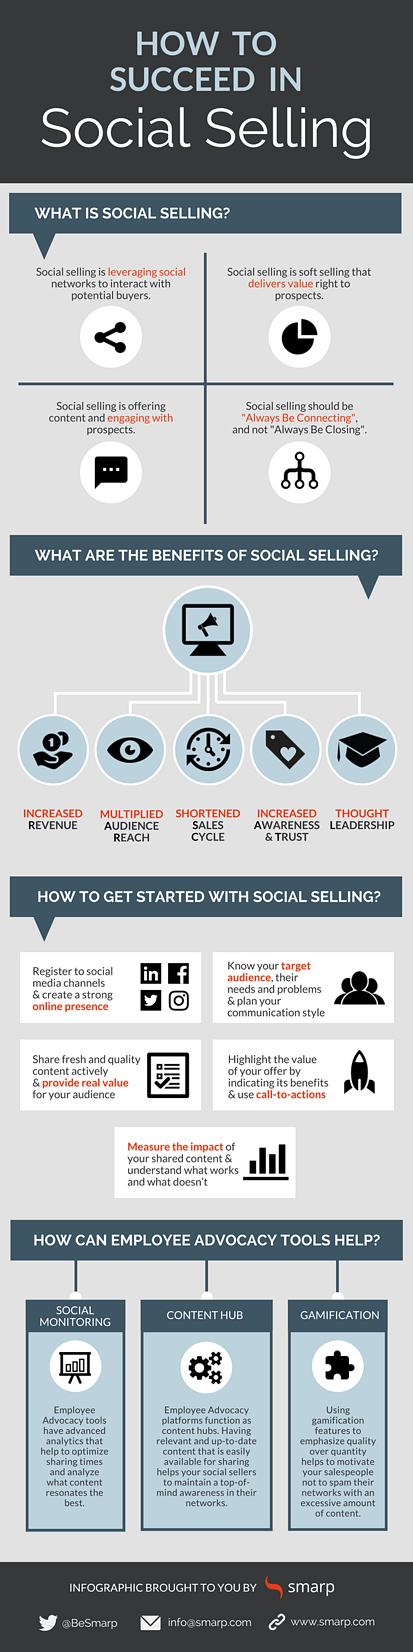 social selling and social currency infographic